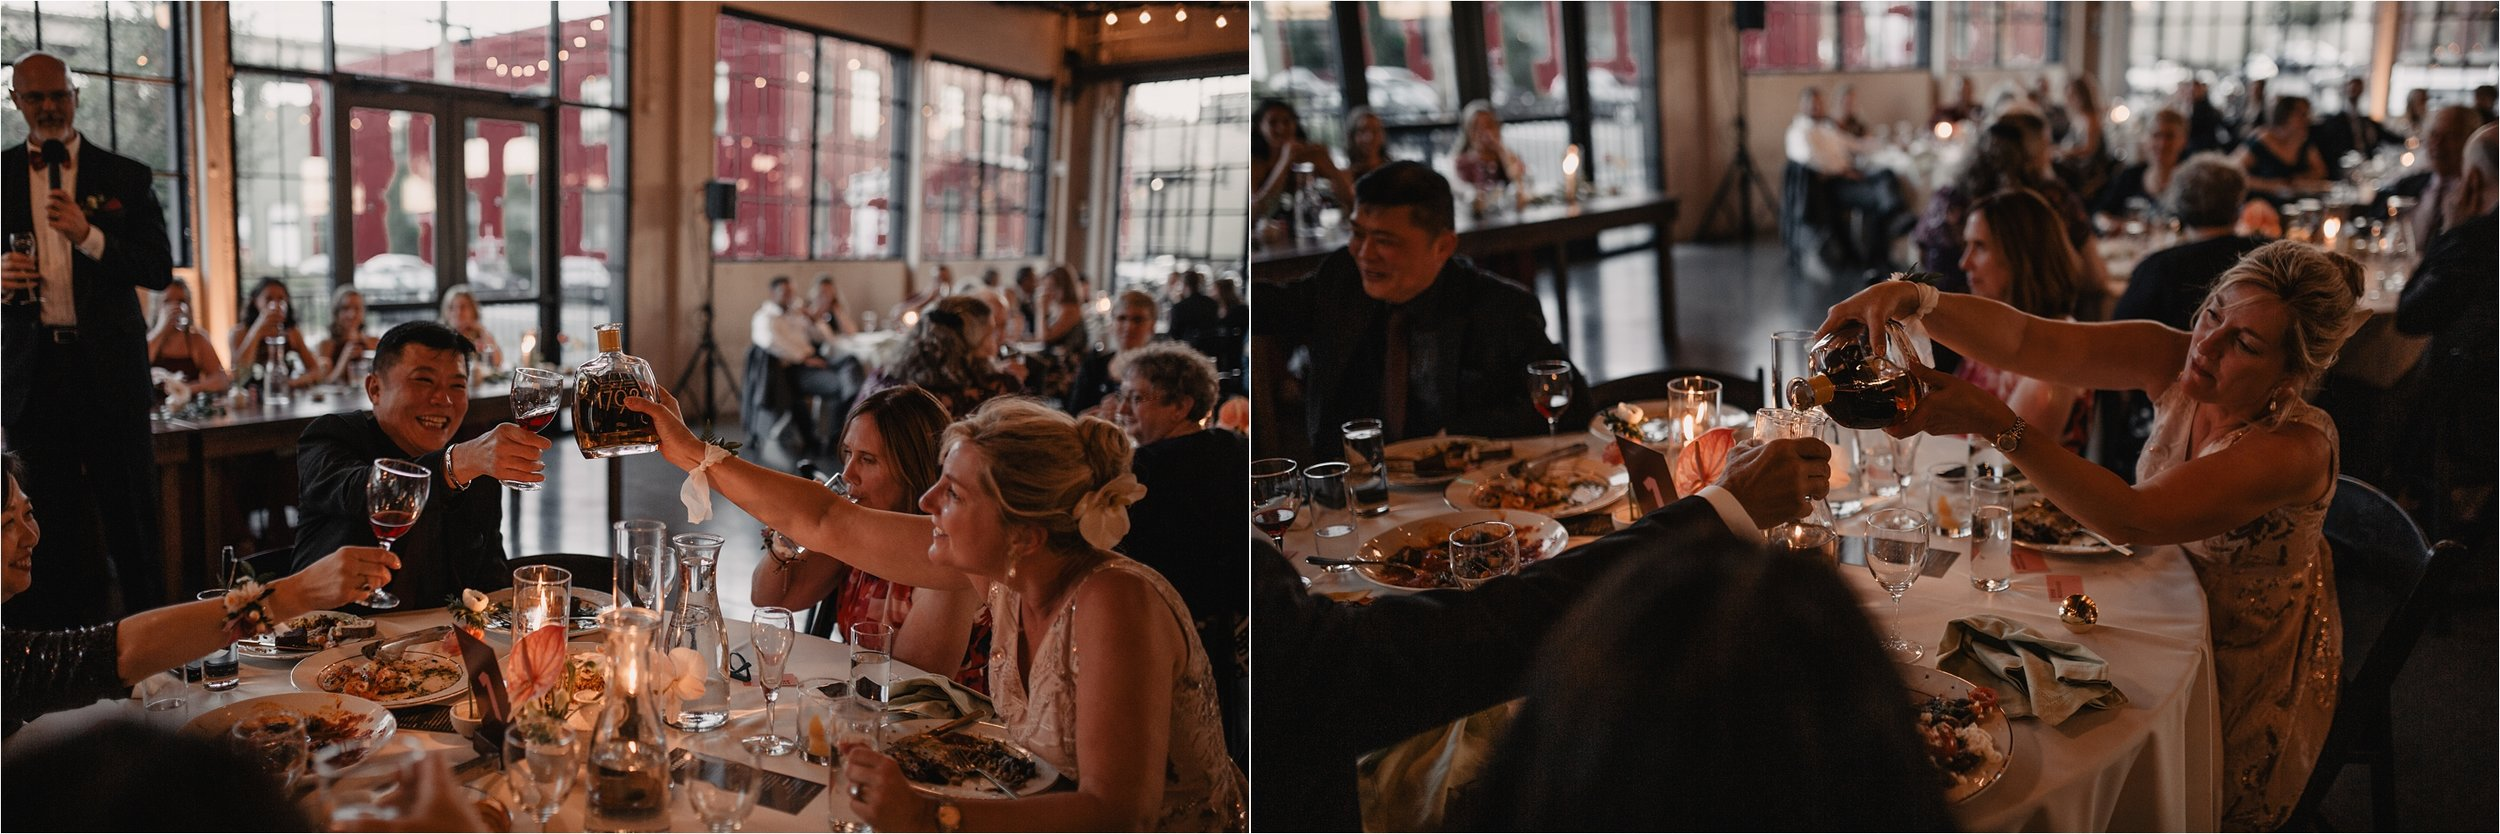 modernized-vintage-wedding-portland-city_0123.jpg